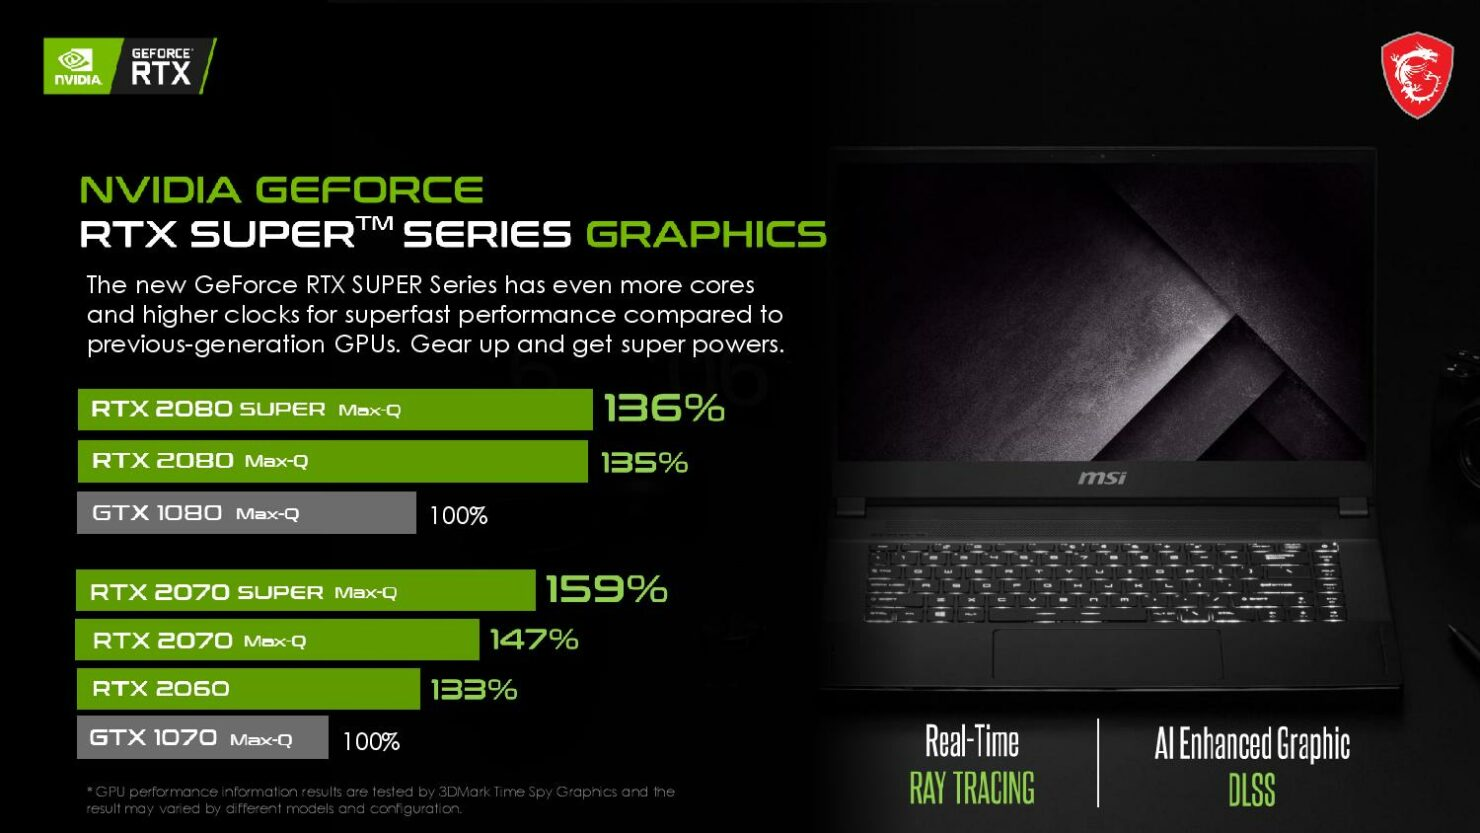 msi-gs66-stealth-product-information-page-010-2